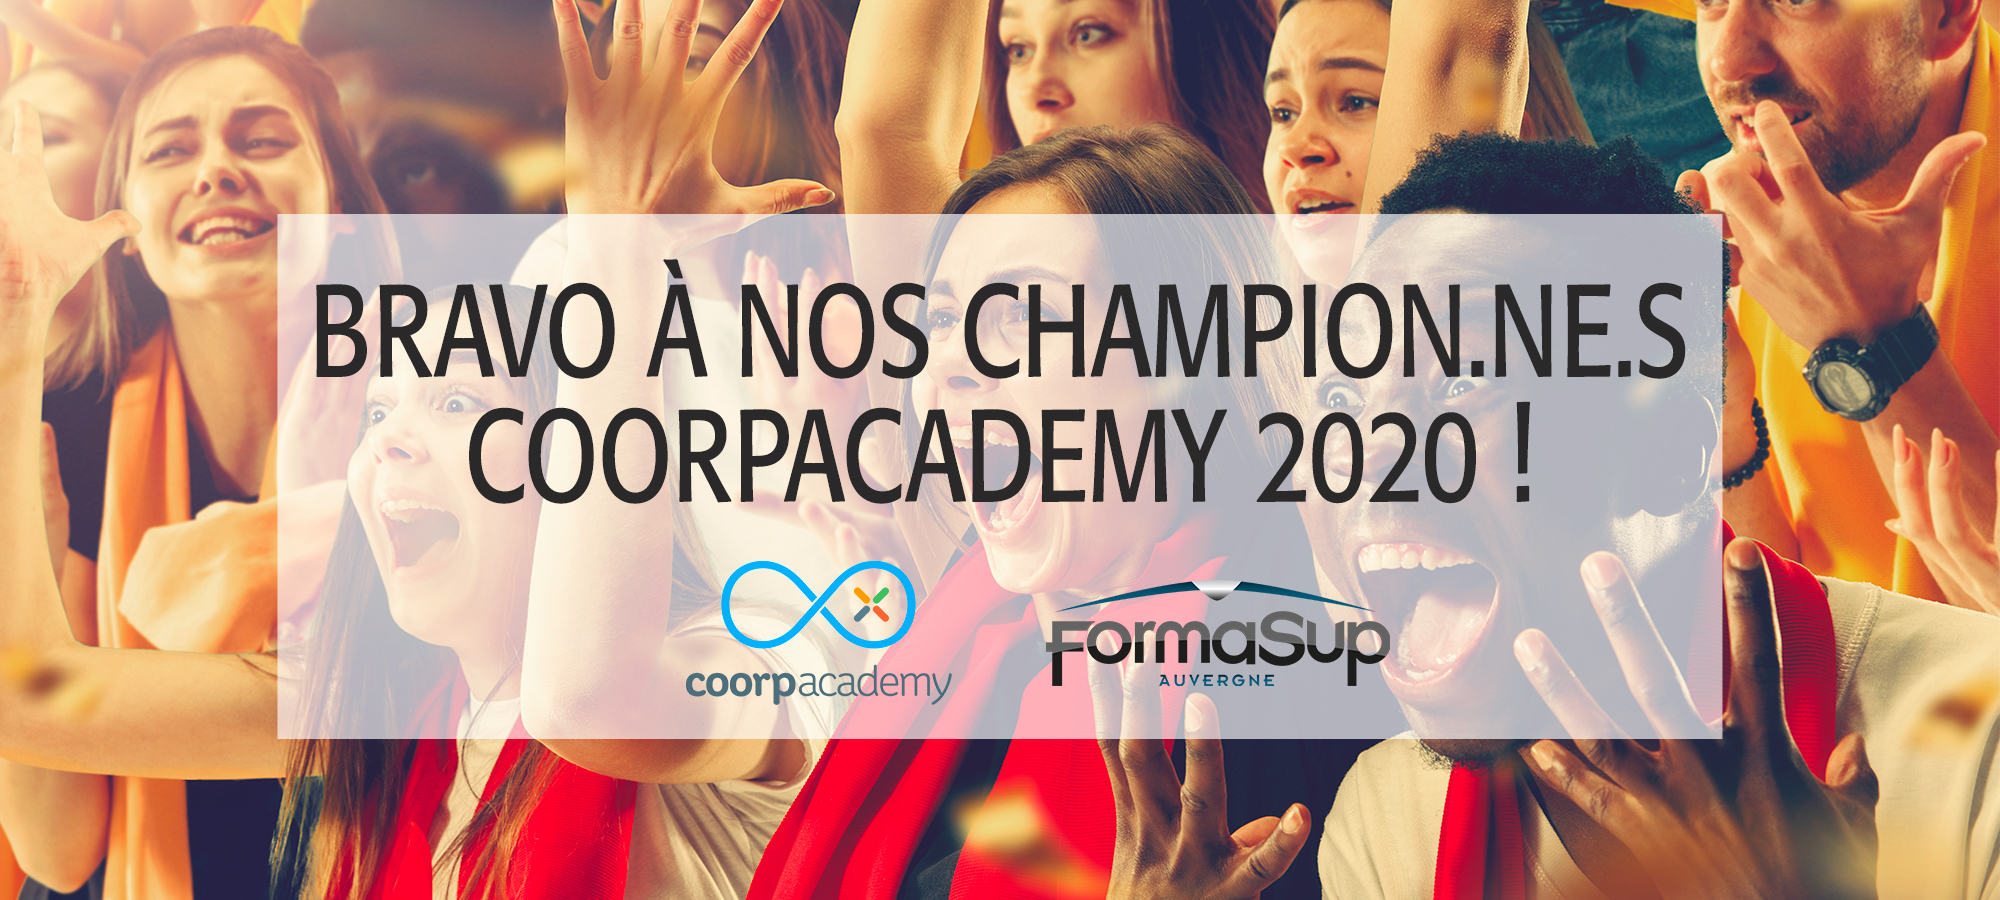 gagnants coorpacademy formasup auvergne